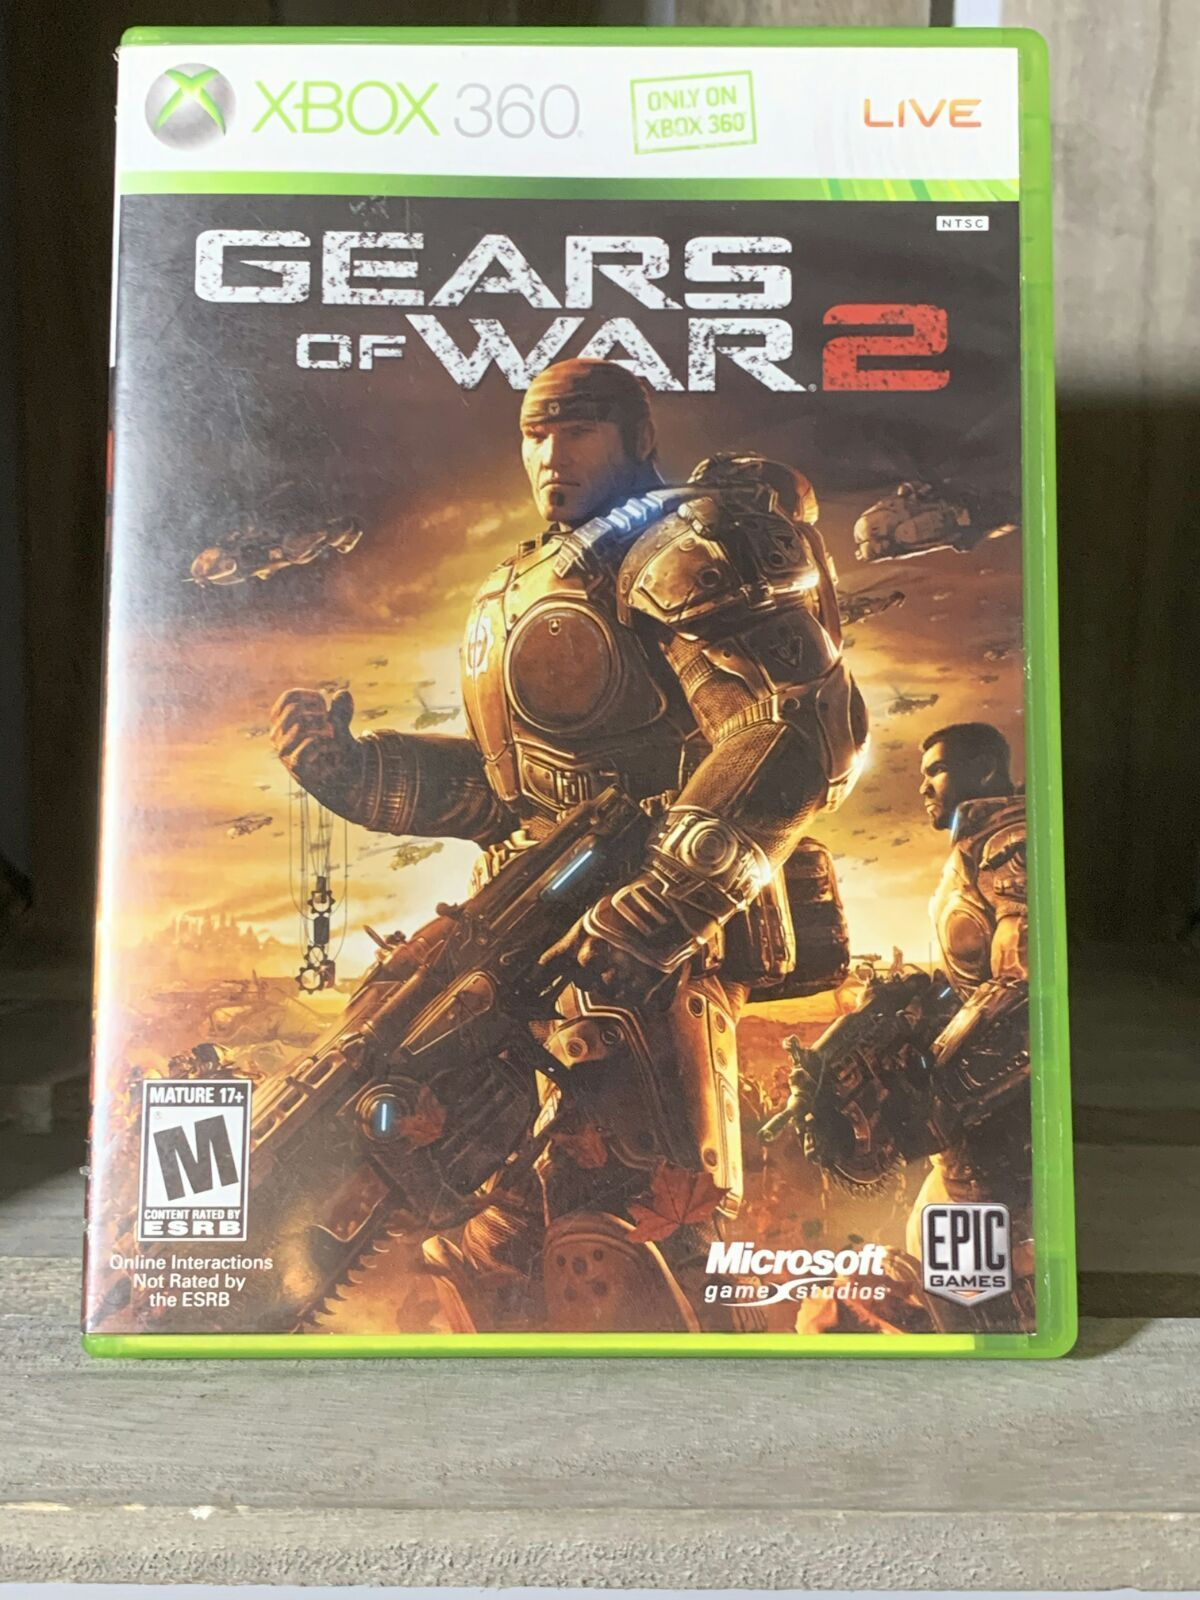 Gears Of War 2 For Xbox 360 Only On Xbox 360 Live Gears Of War 2 Gears Of War Xbox